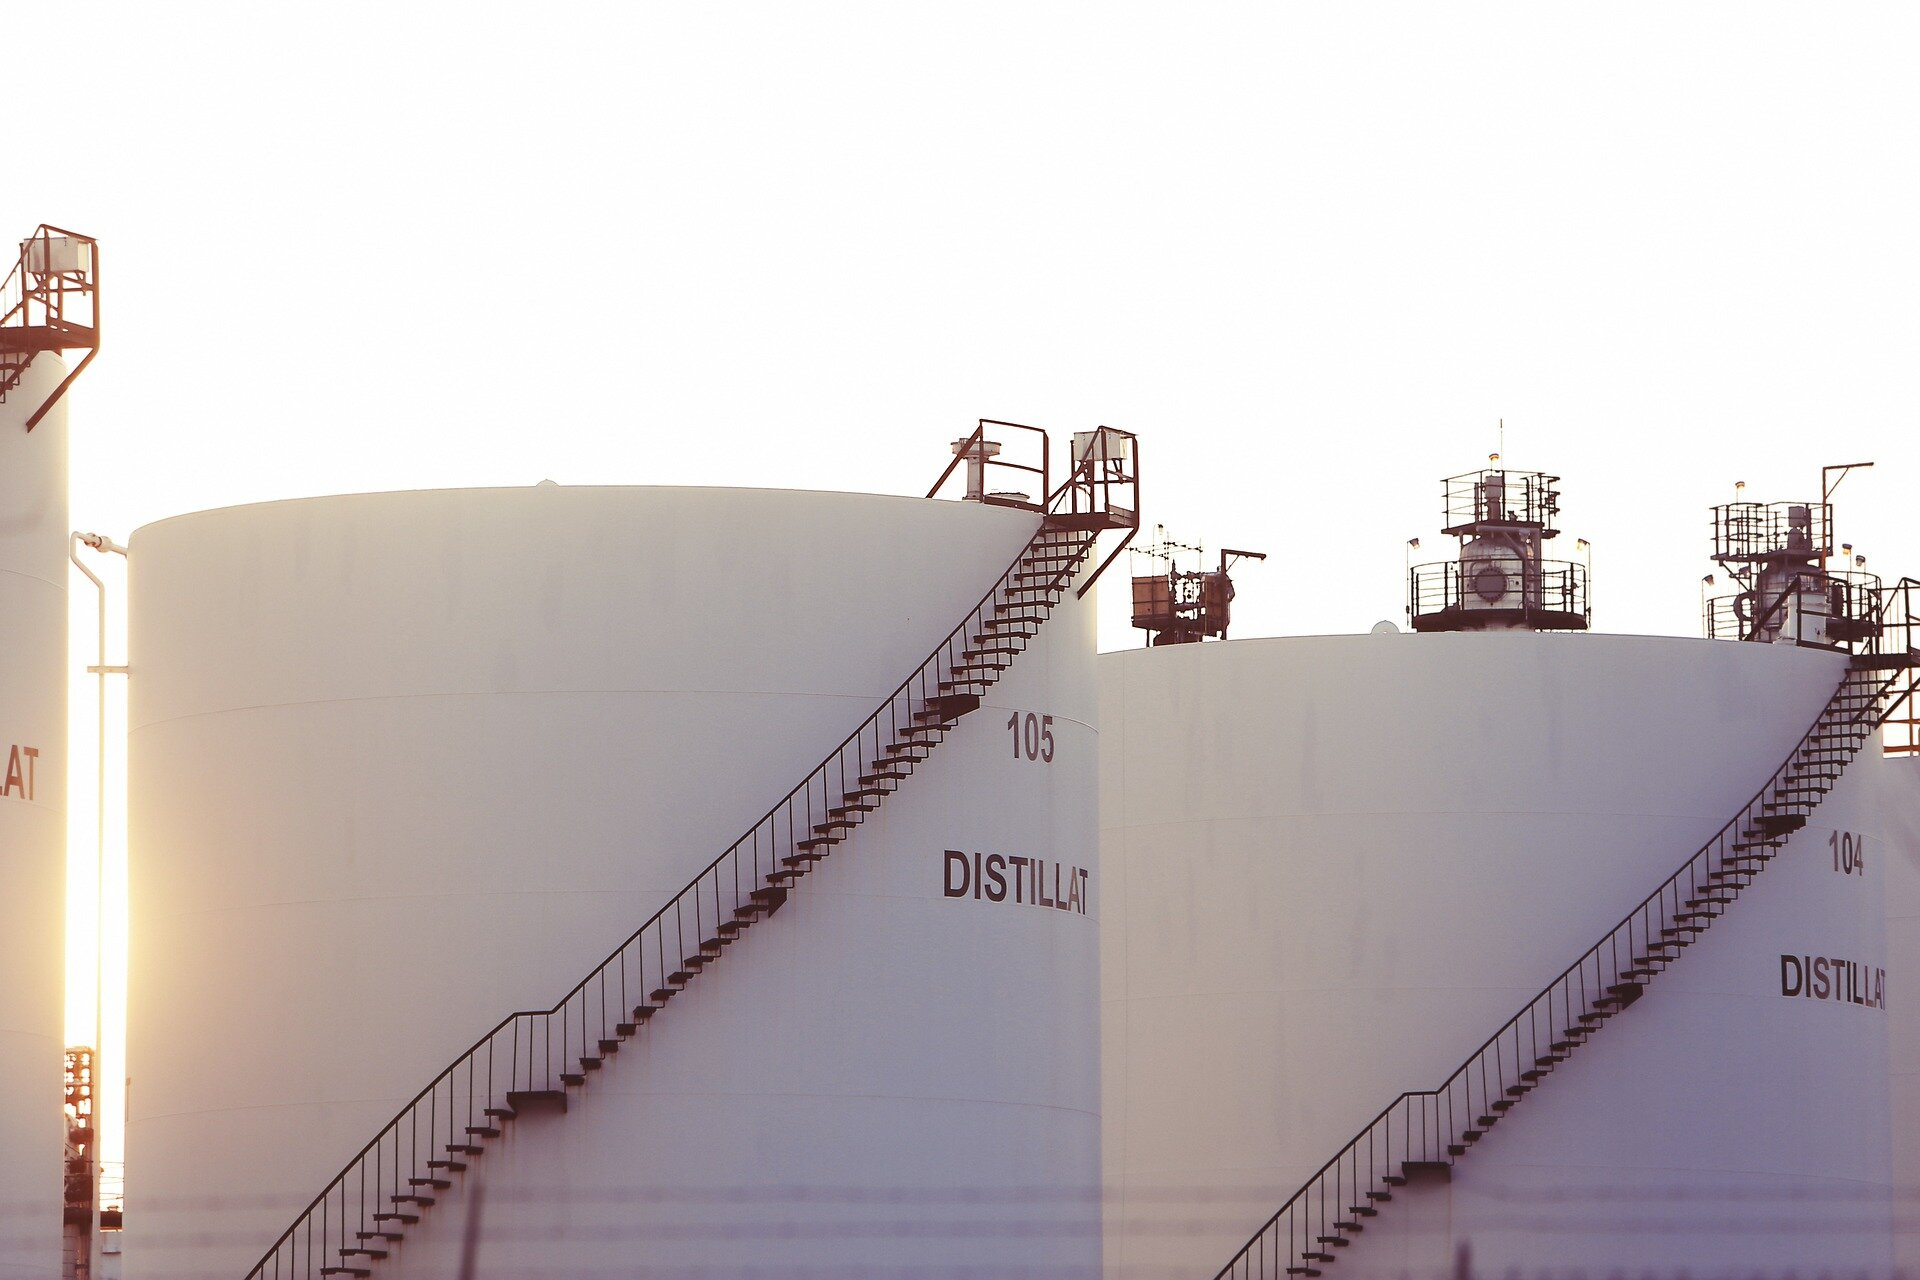 Researchers suggest tight oil prices might be based on futures contracts instead of day-to-day price fluctuations